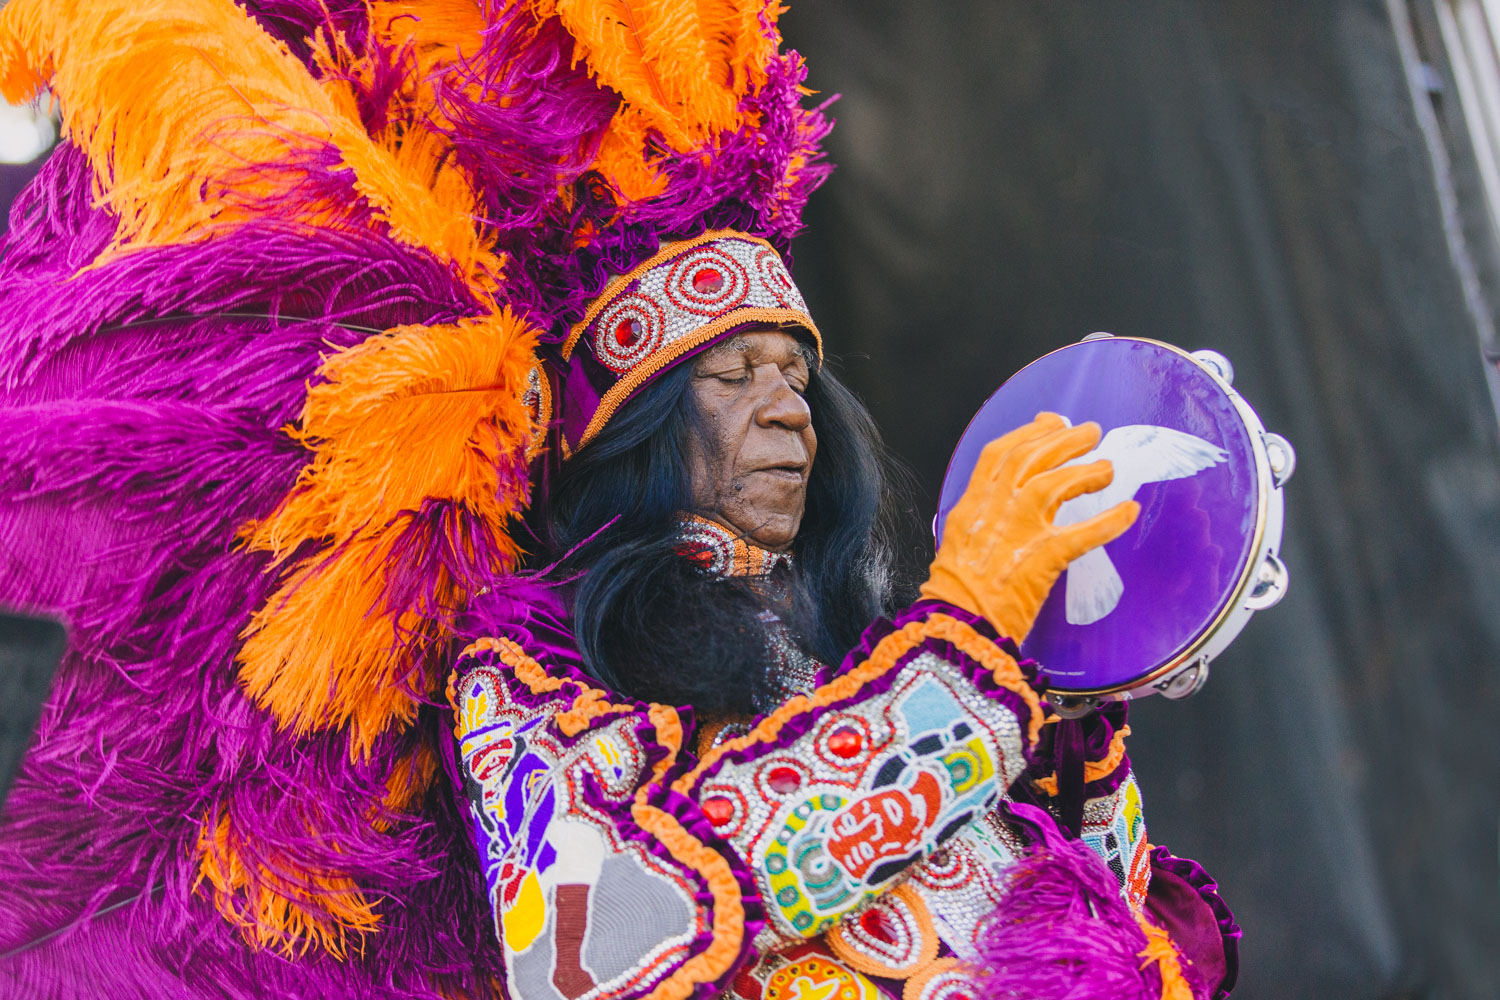 Big Chief Monk Boudreaux was the prettiest all weekend long on the Abita Stage.